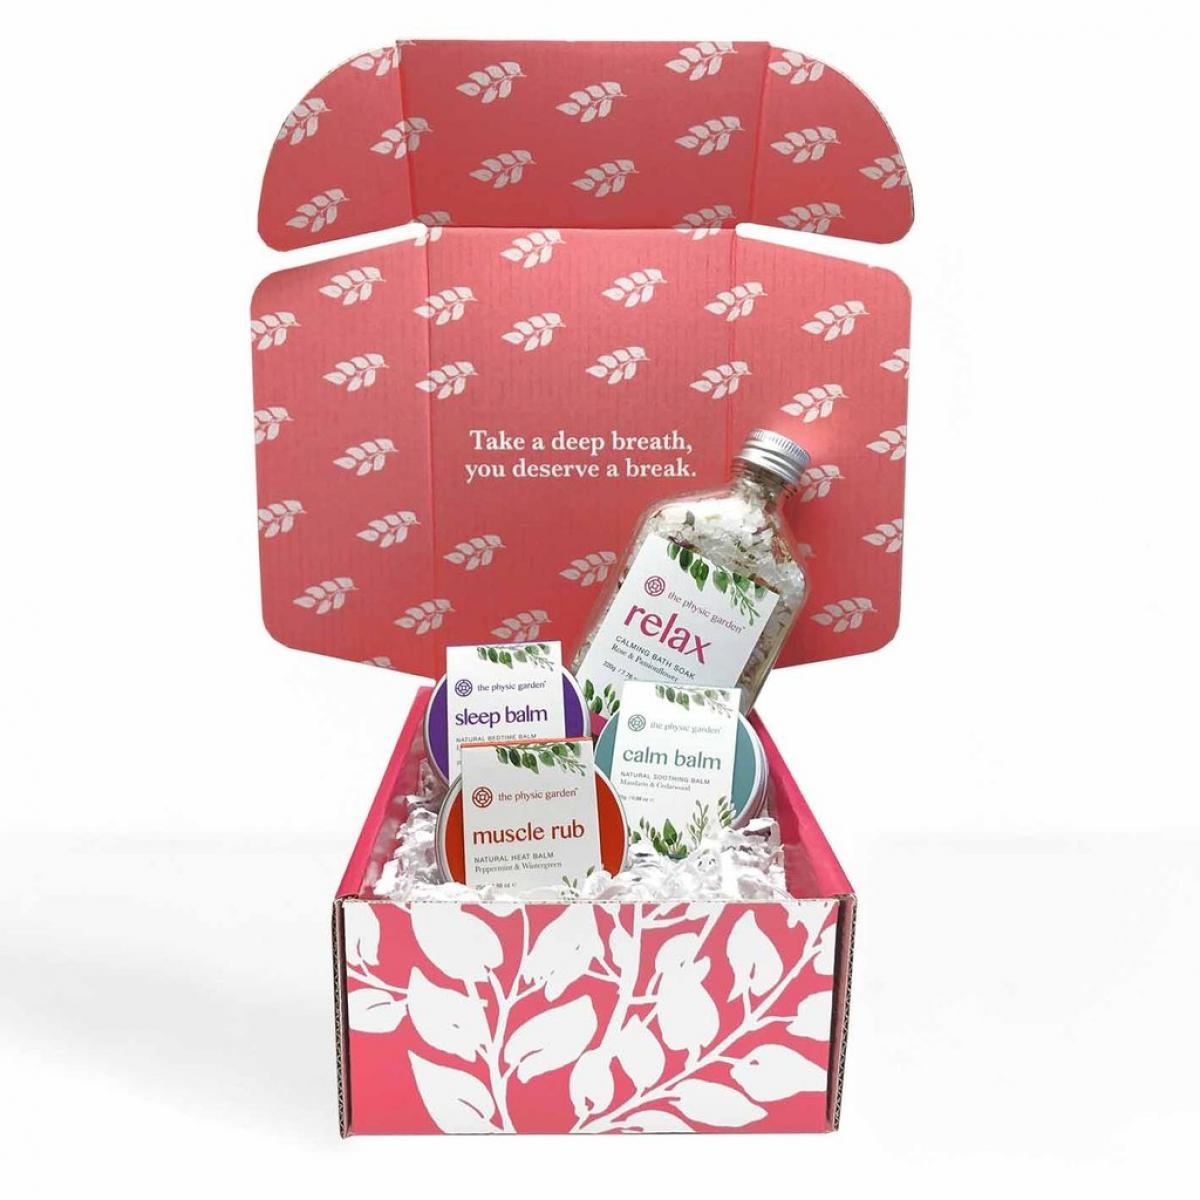 Relax & Restore Gift Set by The Physic Garden - Gift Pack - Throw Some Seeds - Australian gardening gifts and eco products online!